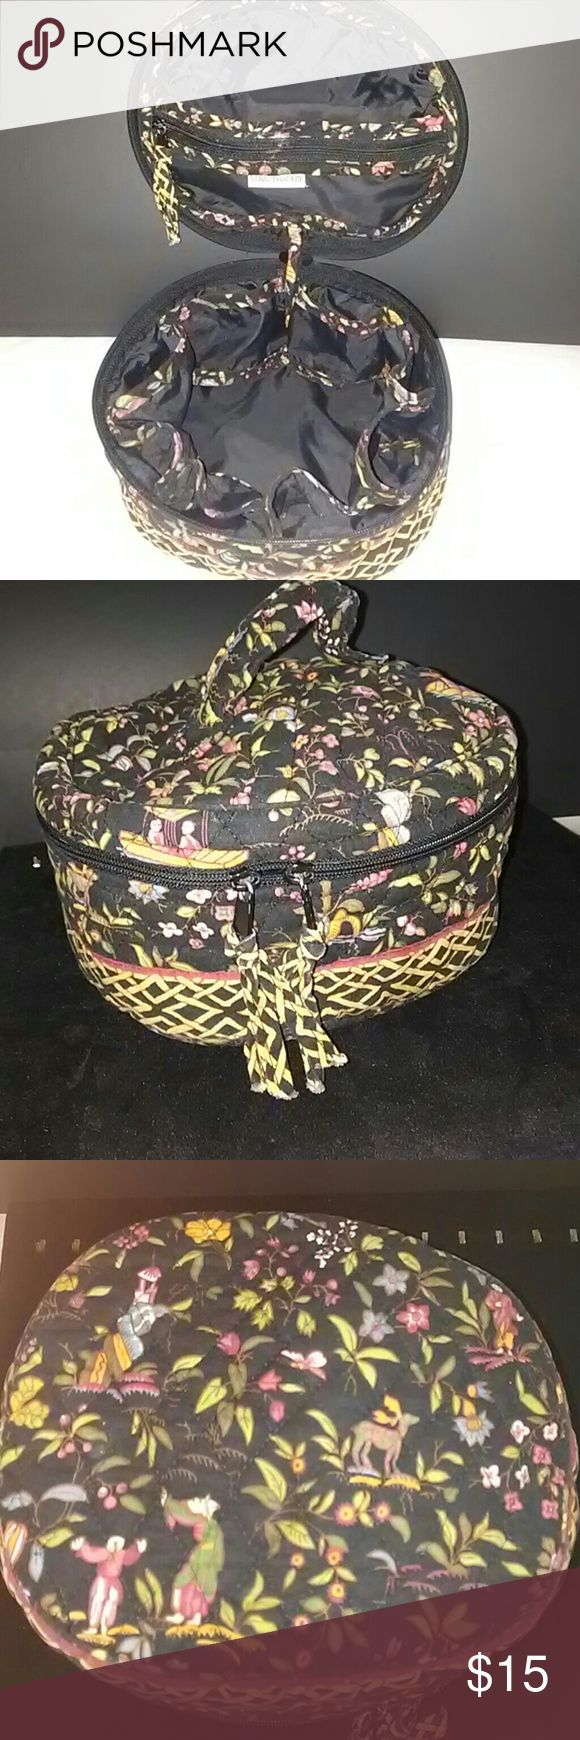 .Used vera Bradley toiletry makeup storage bag Used makeup travel bag 9 inches round from side to side on the top width.long is 3 inches. The bag has a lot of compartments inside to store makeup or your travel needs. The bag is clean there is a small rip on the zipper part near the tag and lining a small rip it can be sewed if you have a talent other than that  I couldn't see any other issues please look at all pictures. And see if this inperfections are ok with you before you purchase this…